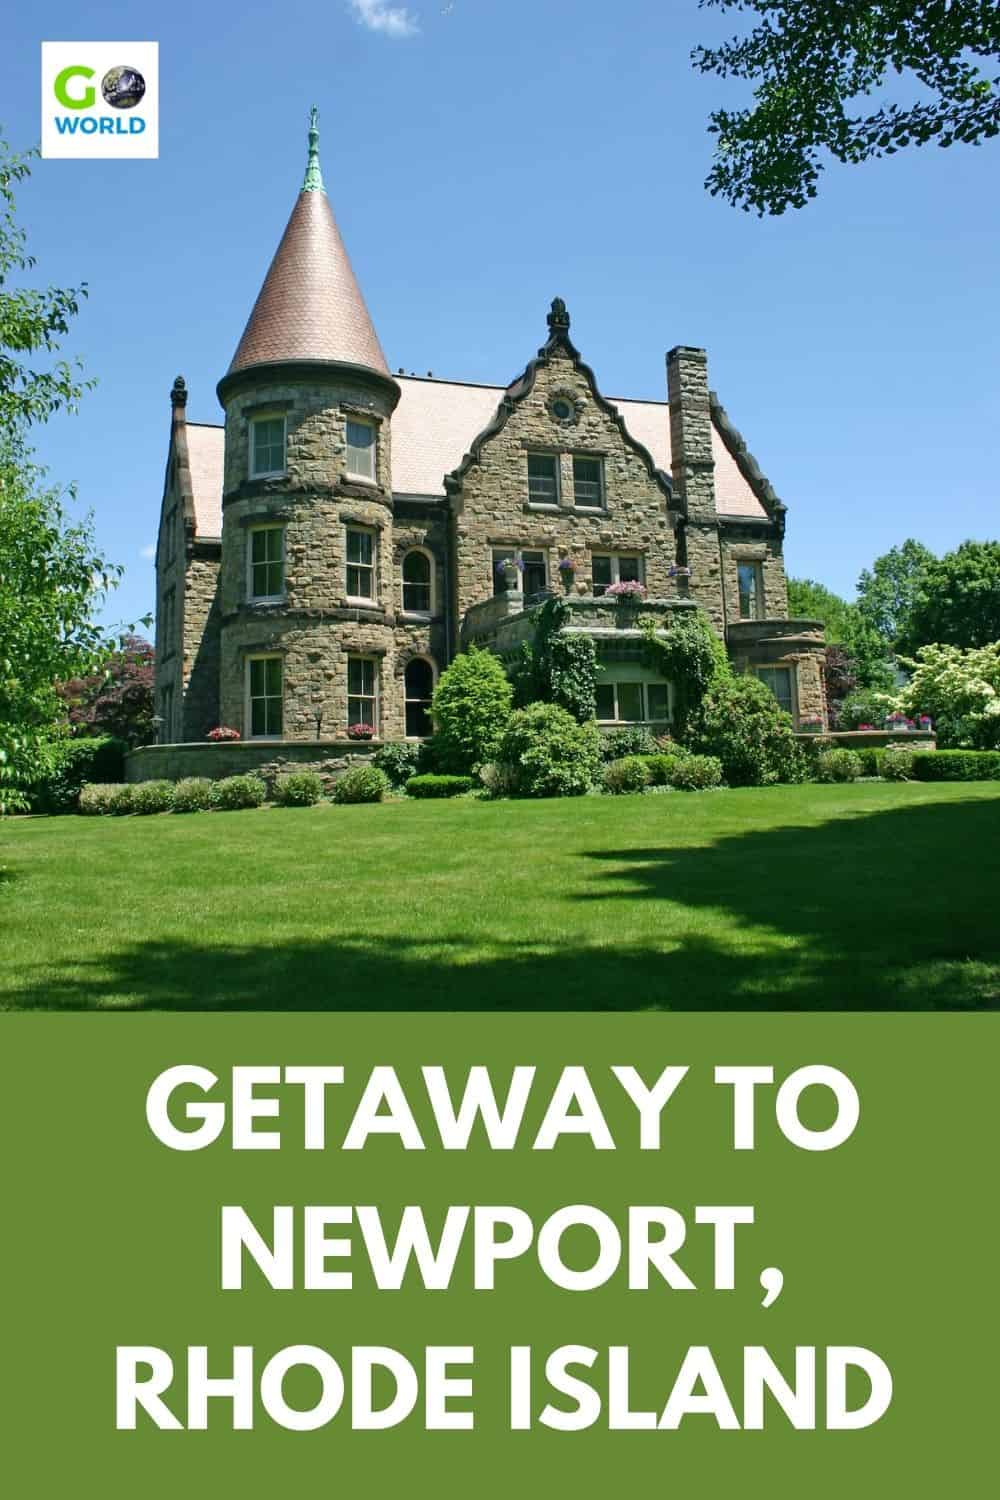 The charming town of Newport makes a perfect getaway in Rhode Island. You'll find historic mansions, the scenic Cliff Walk & lots of lobster. #RhodeIsland #NewportRI